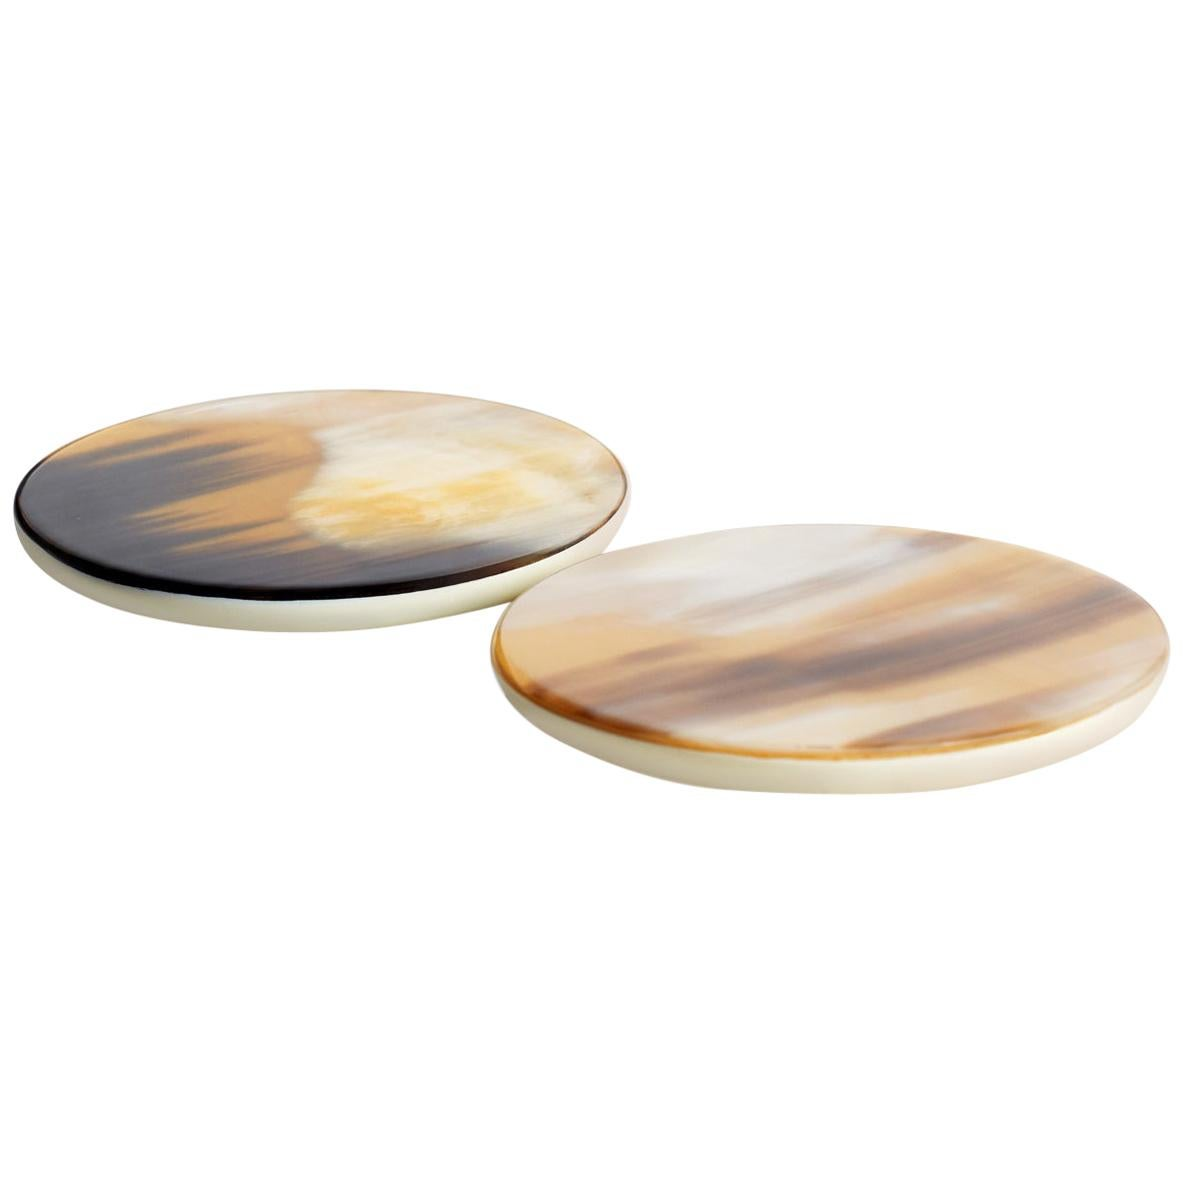 Set of 2 Round Coasters in Corno Italiano and Ivory Lacquered Wood, Mod. 220